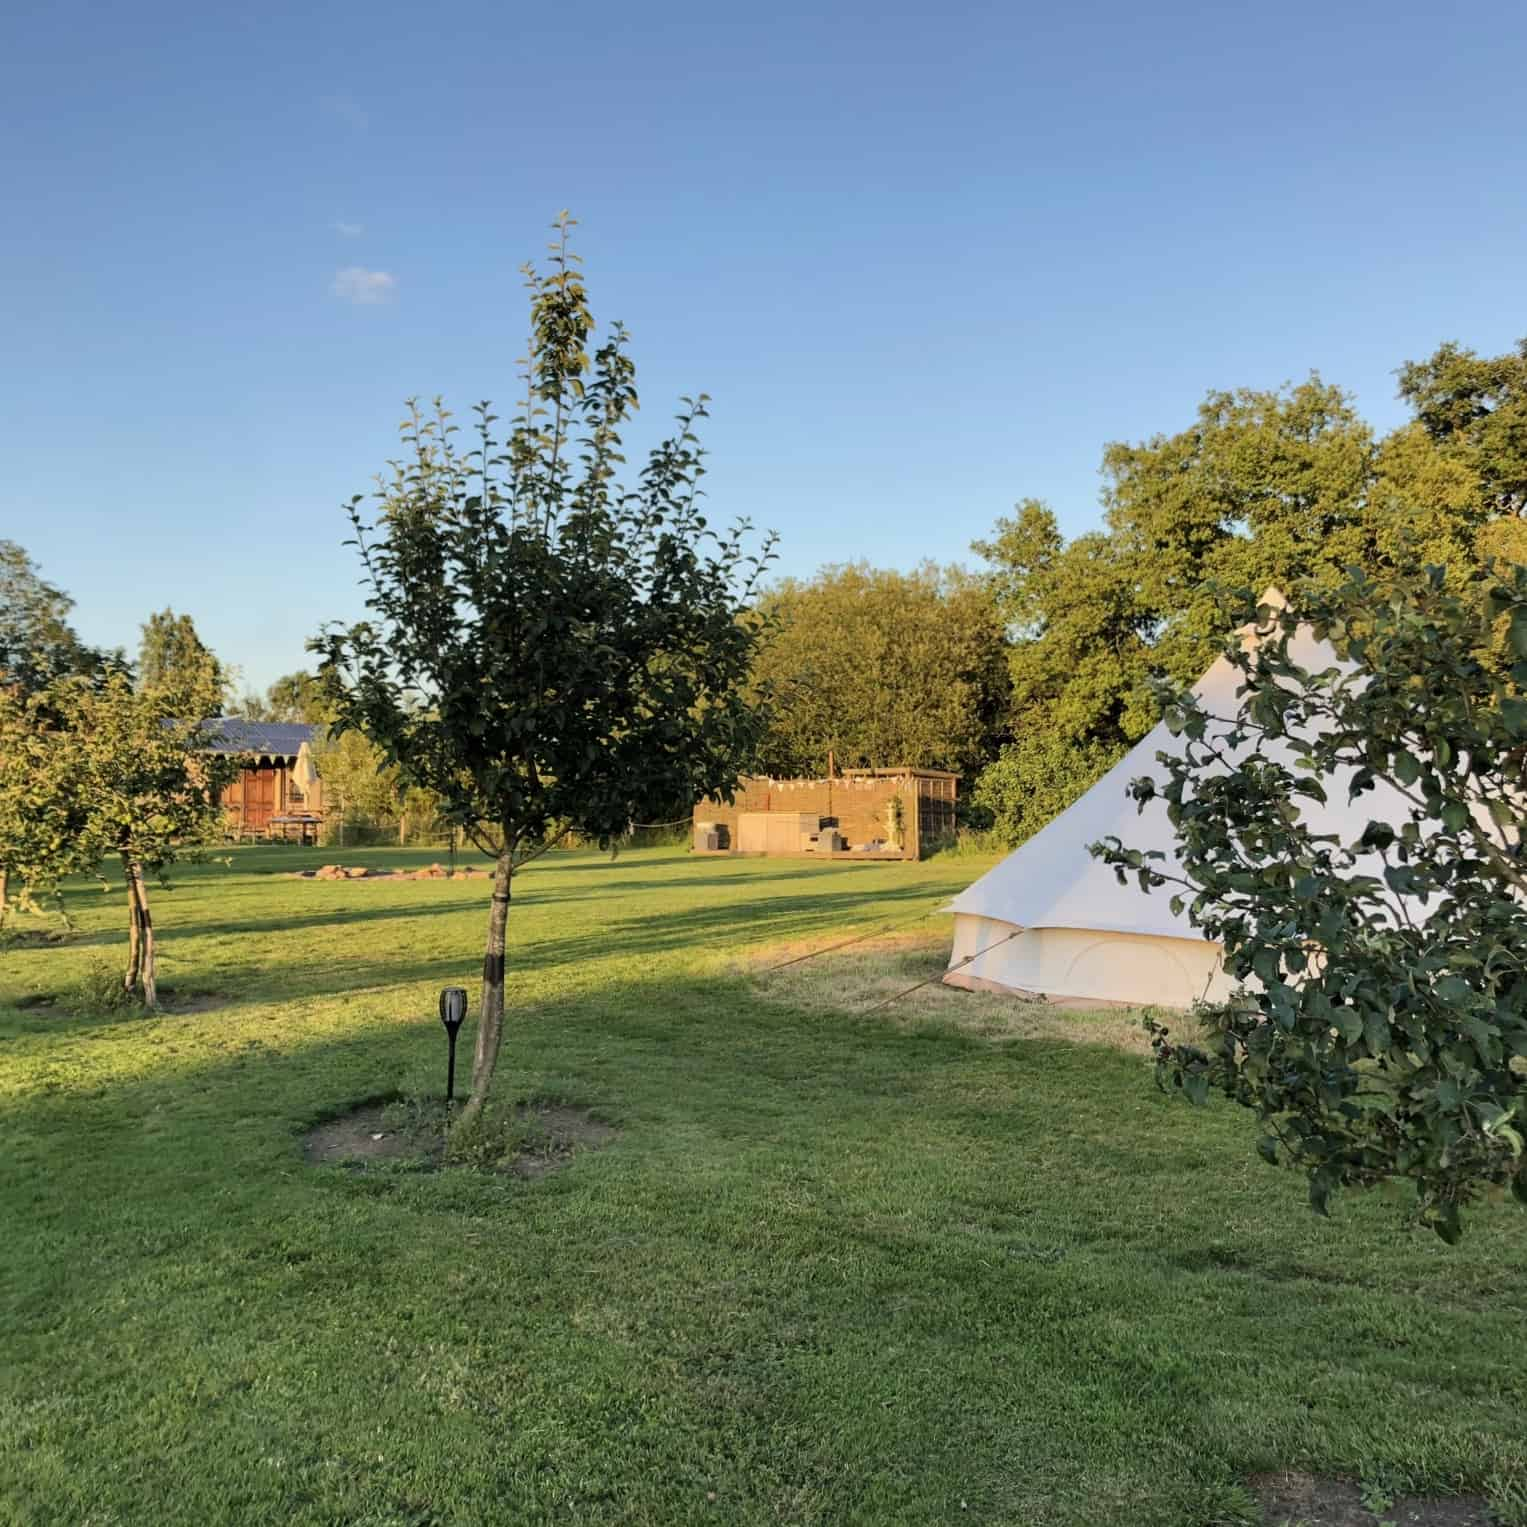 bell tent with trees